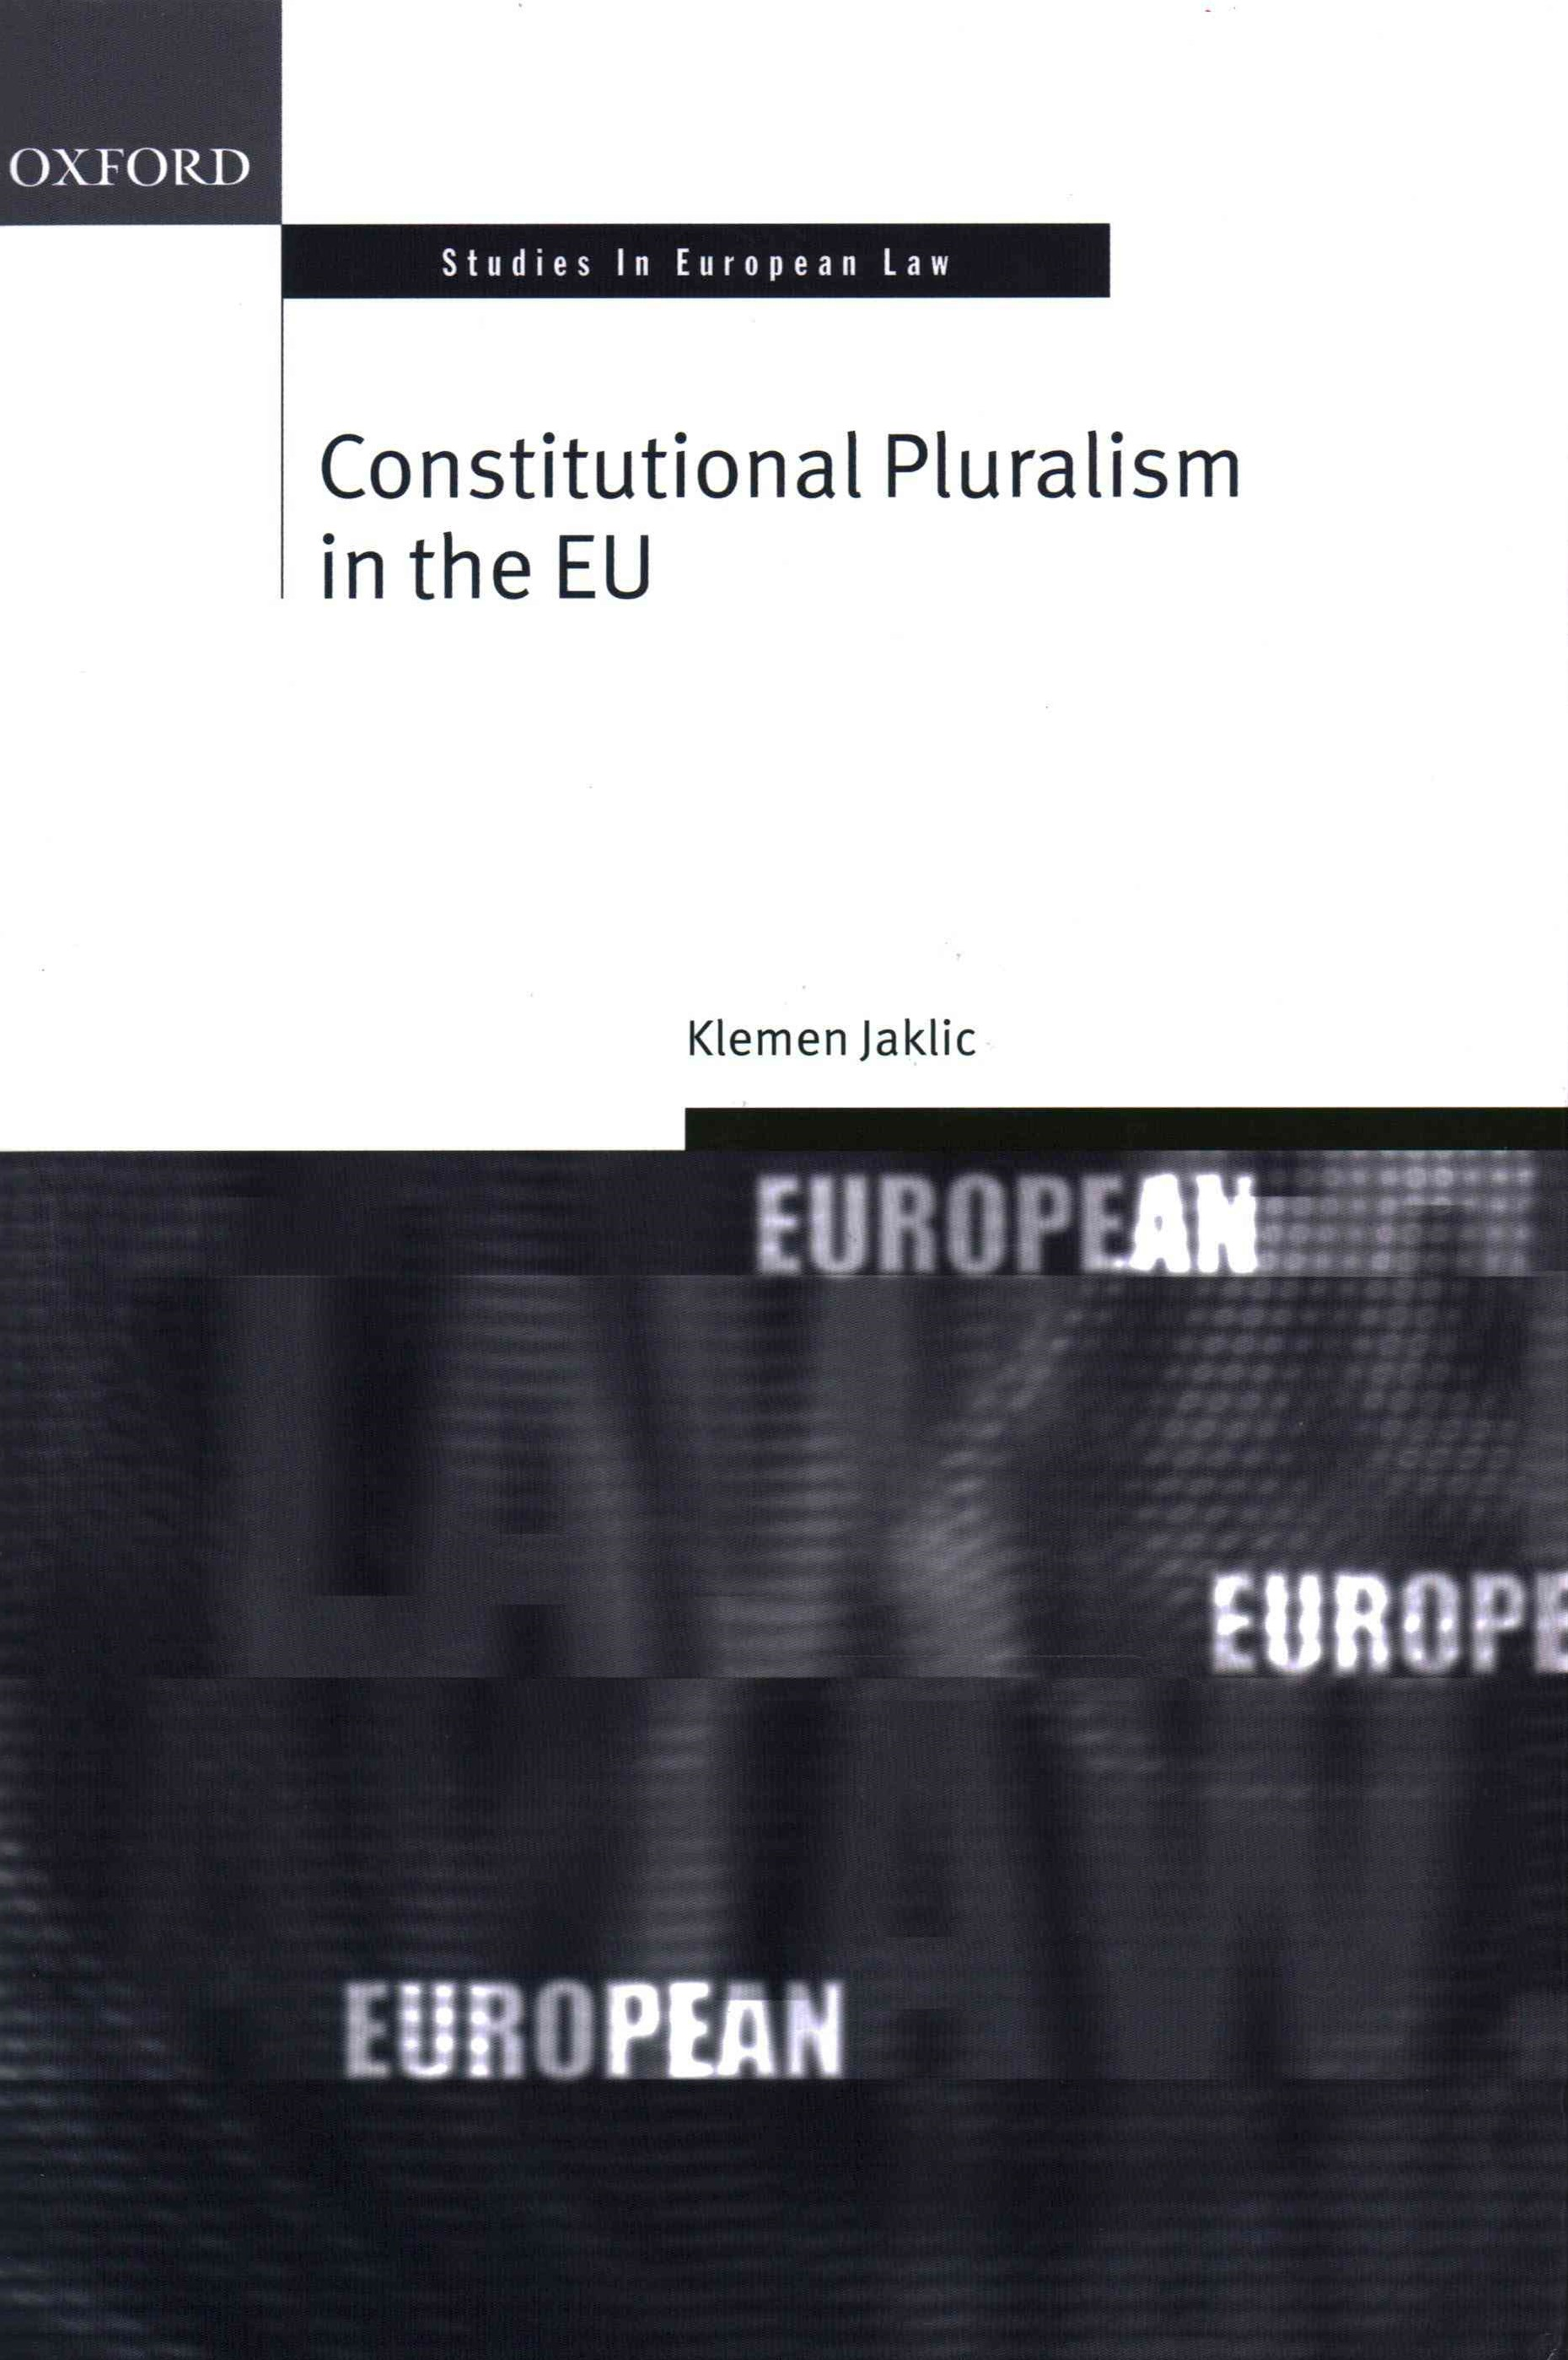 Constitutional Pluralism in the EU